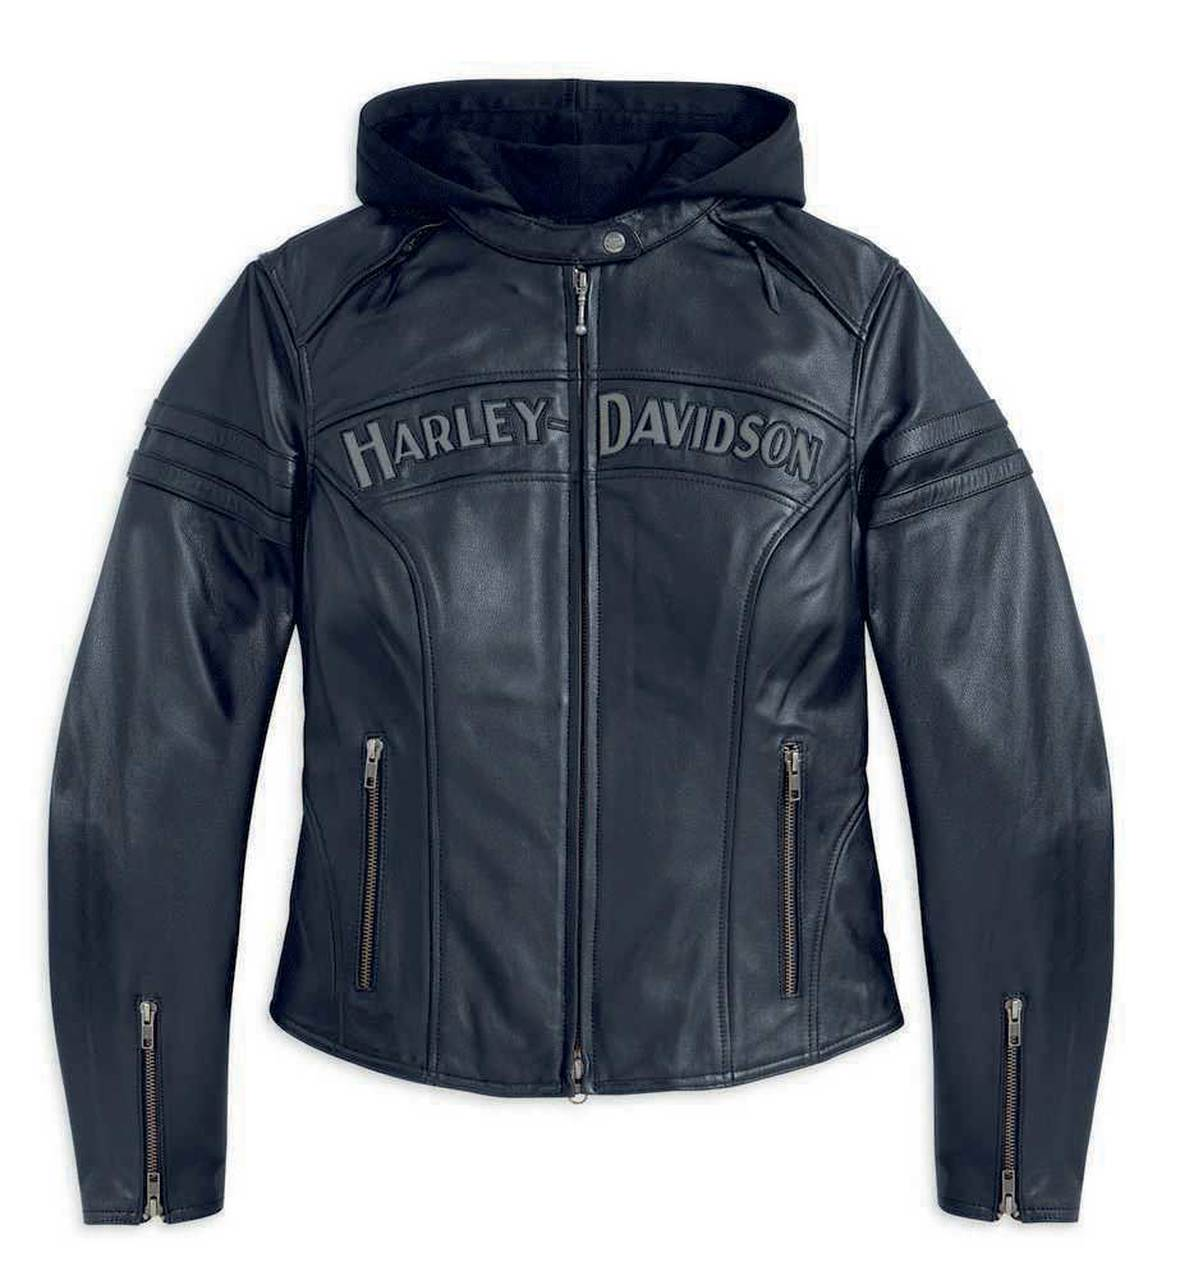 Harley-Davidson® Women's Miss Enthusiast 3 in 1 Leather Jacket